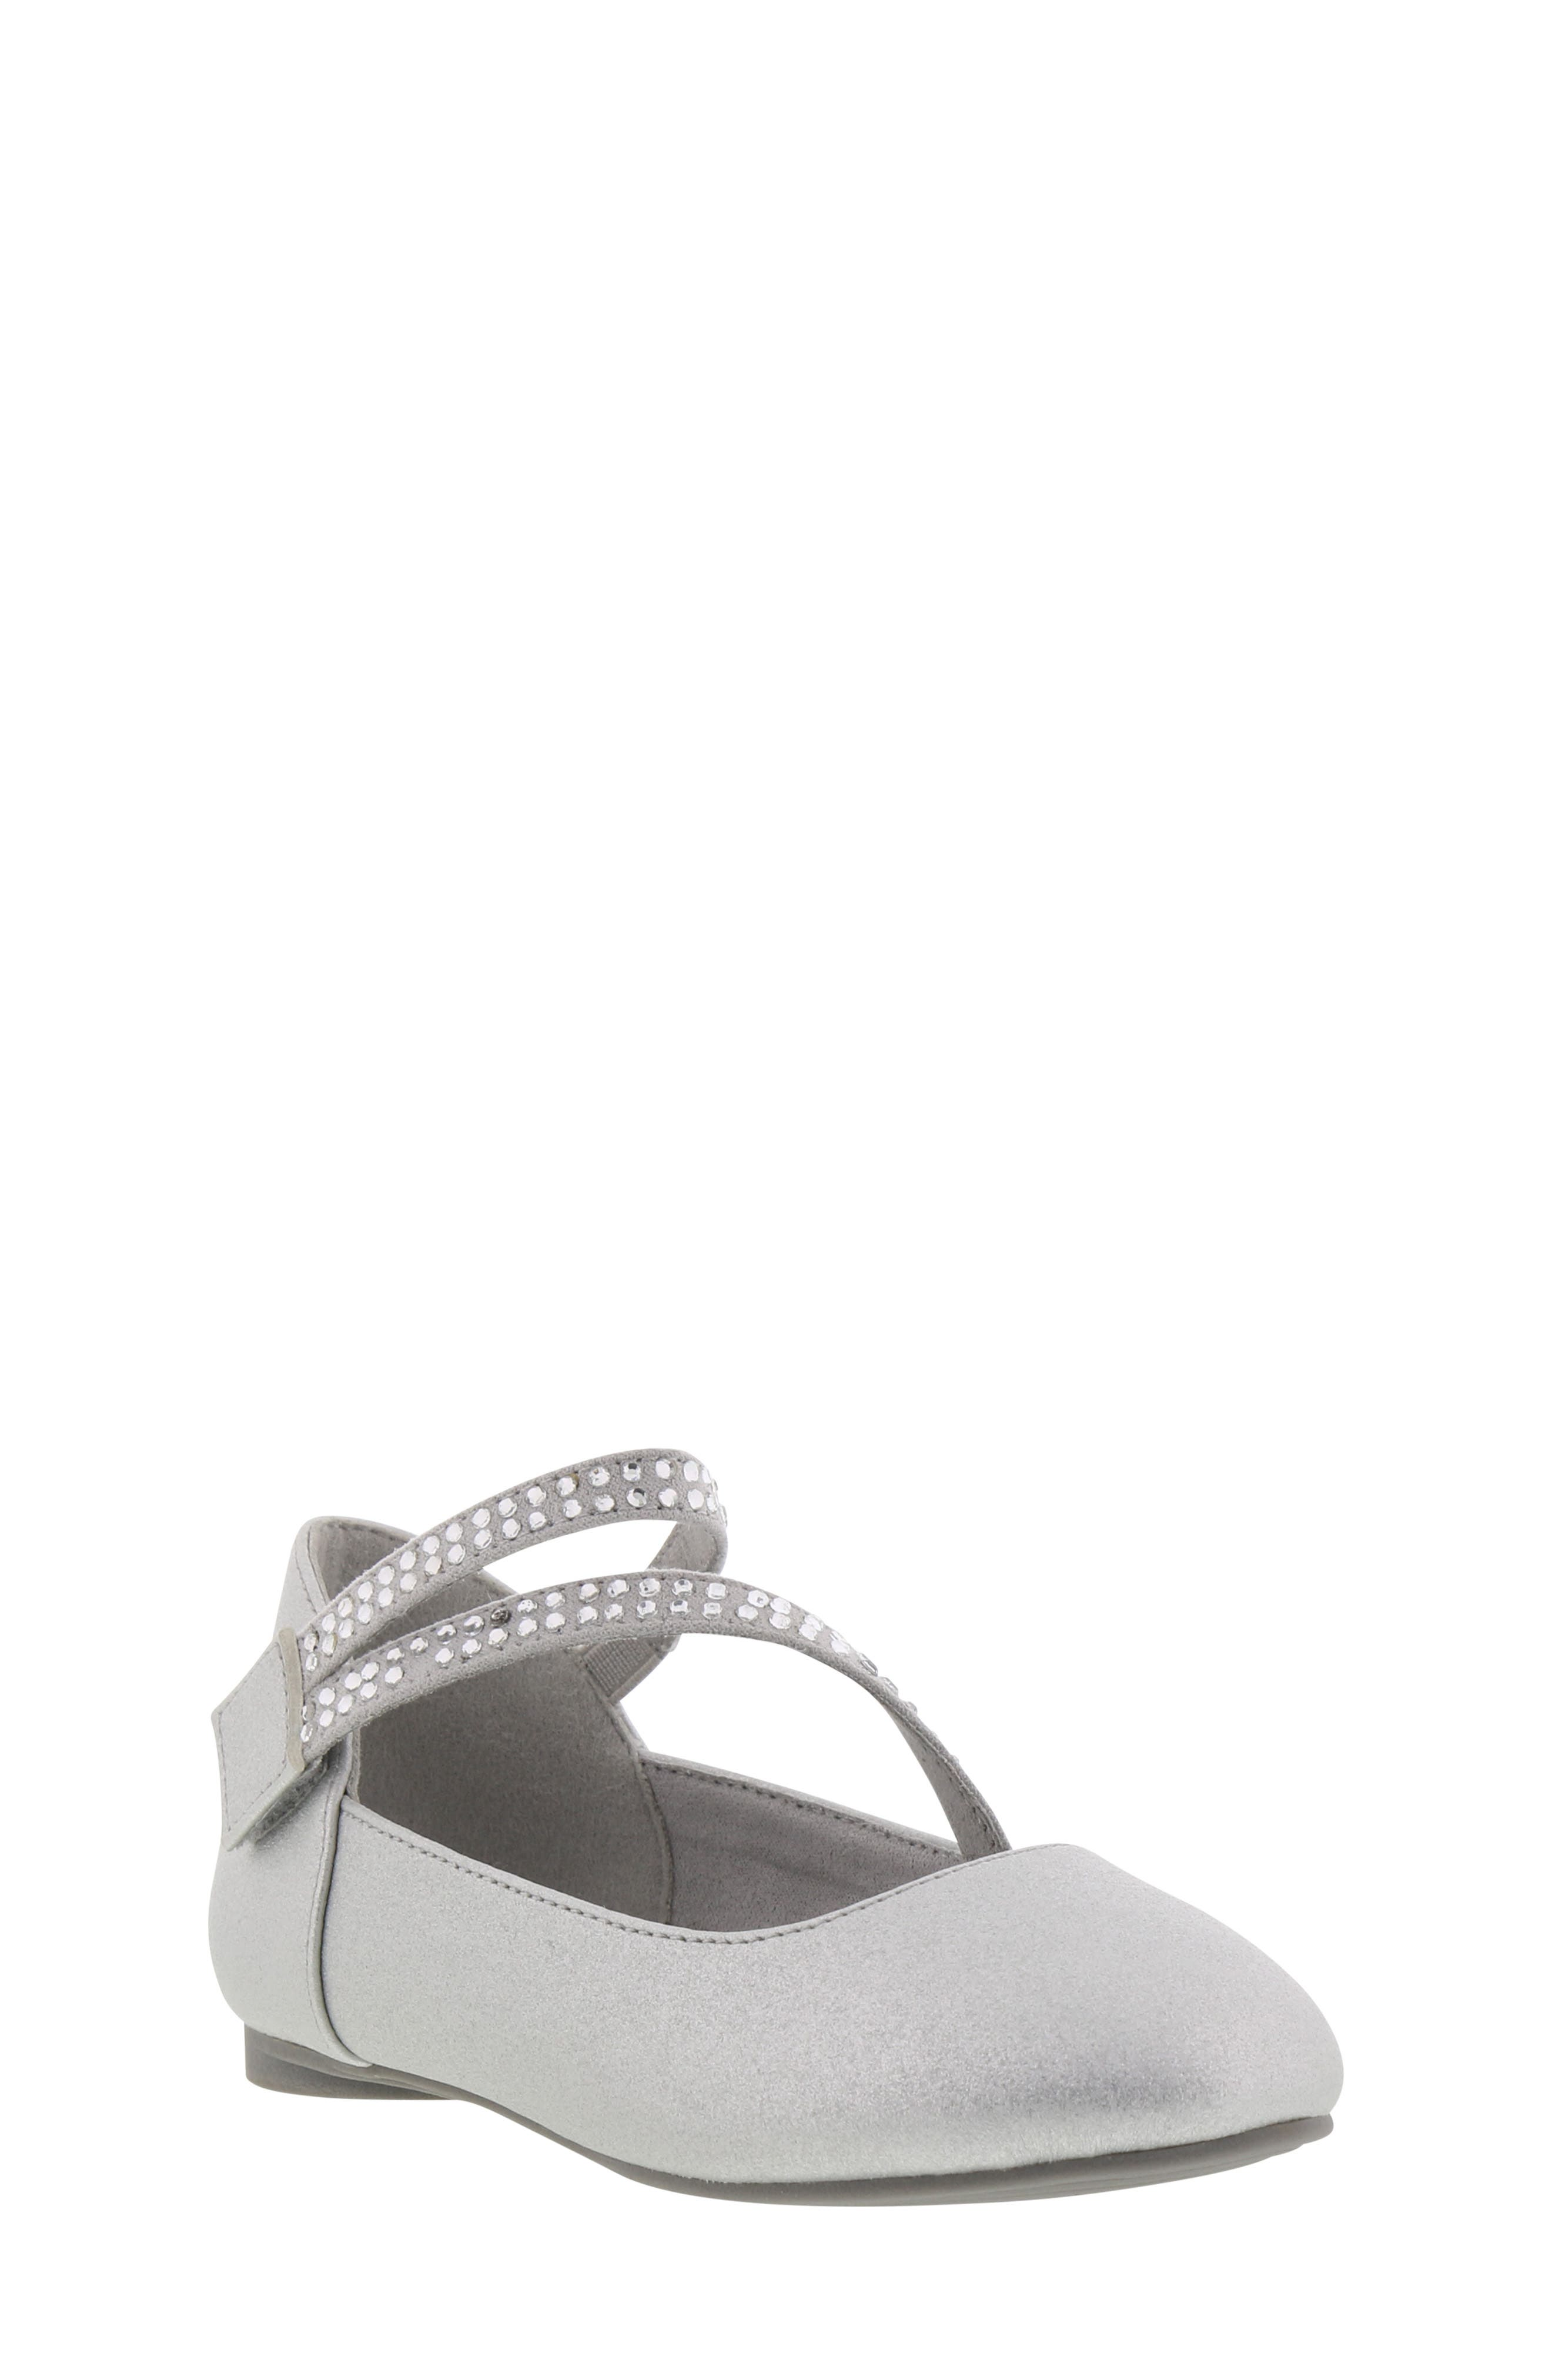 REACTION KENNETH COLE, Tap Lily-T Embellished Flat, Main thumbnail 1, color, SILVER